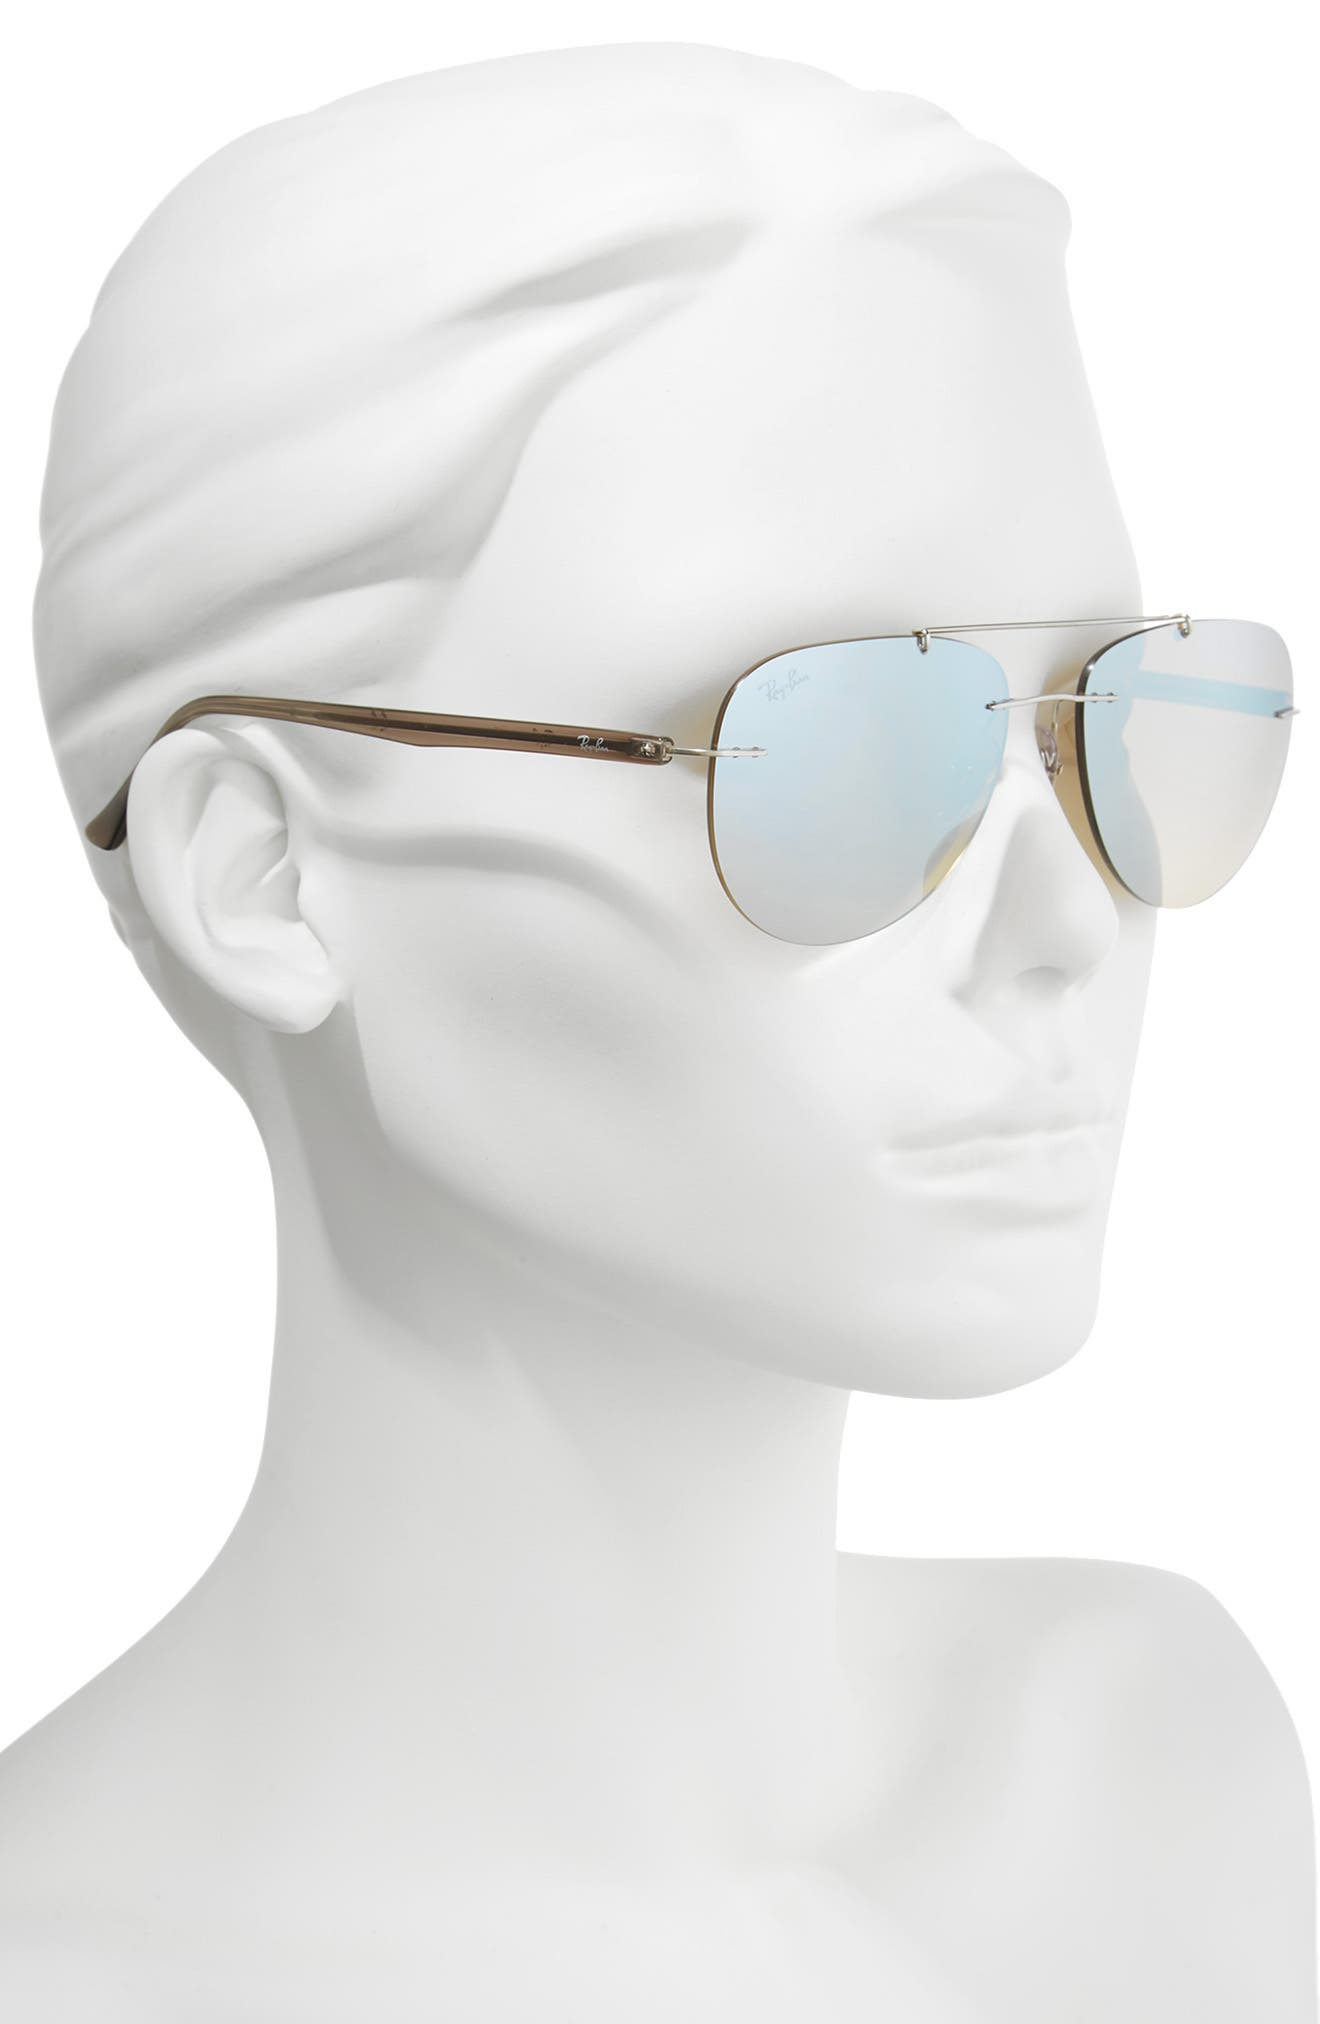 Phantos 57mm Mirrored Rimless Aviator Sunglasses,                             Alternate thumbnail 2, color,                             040